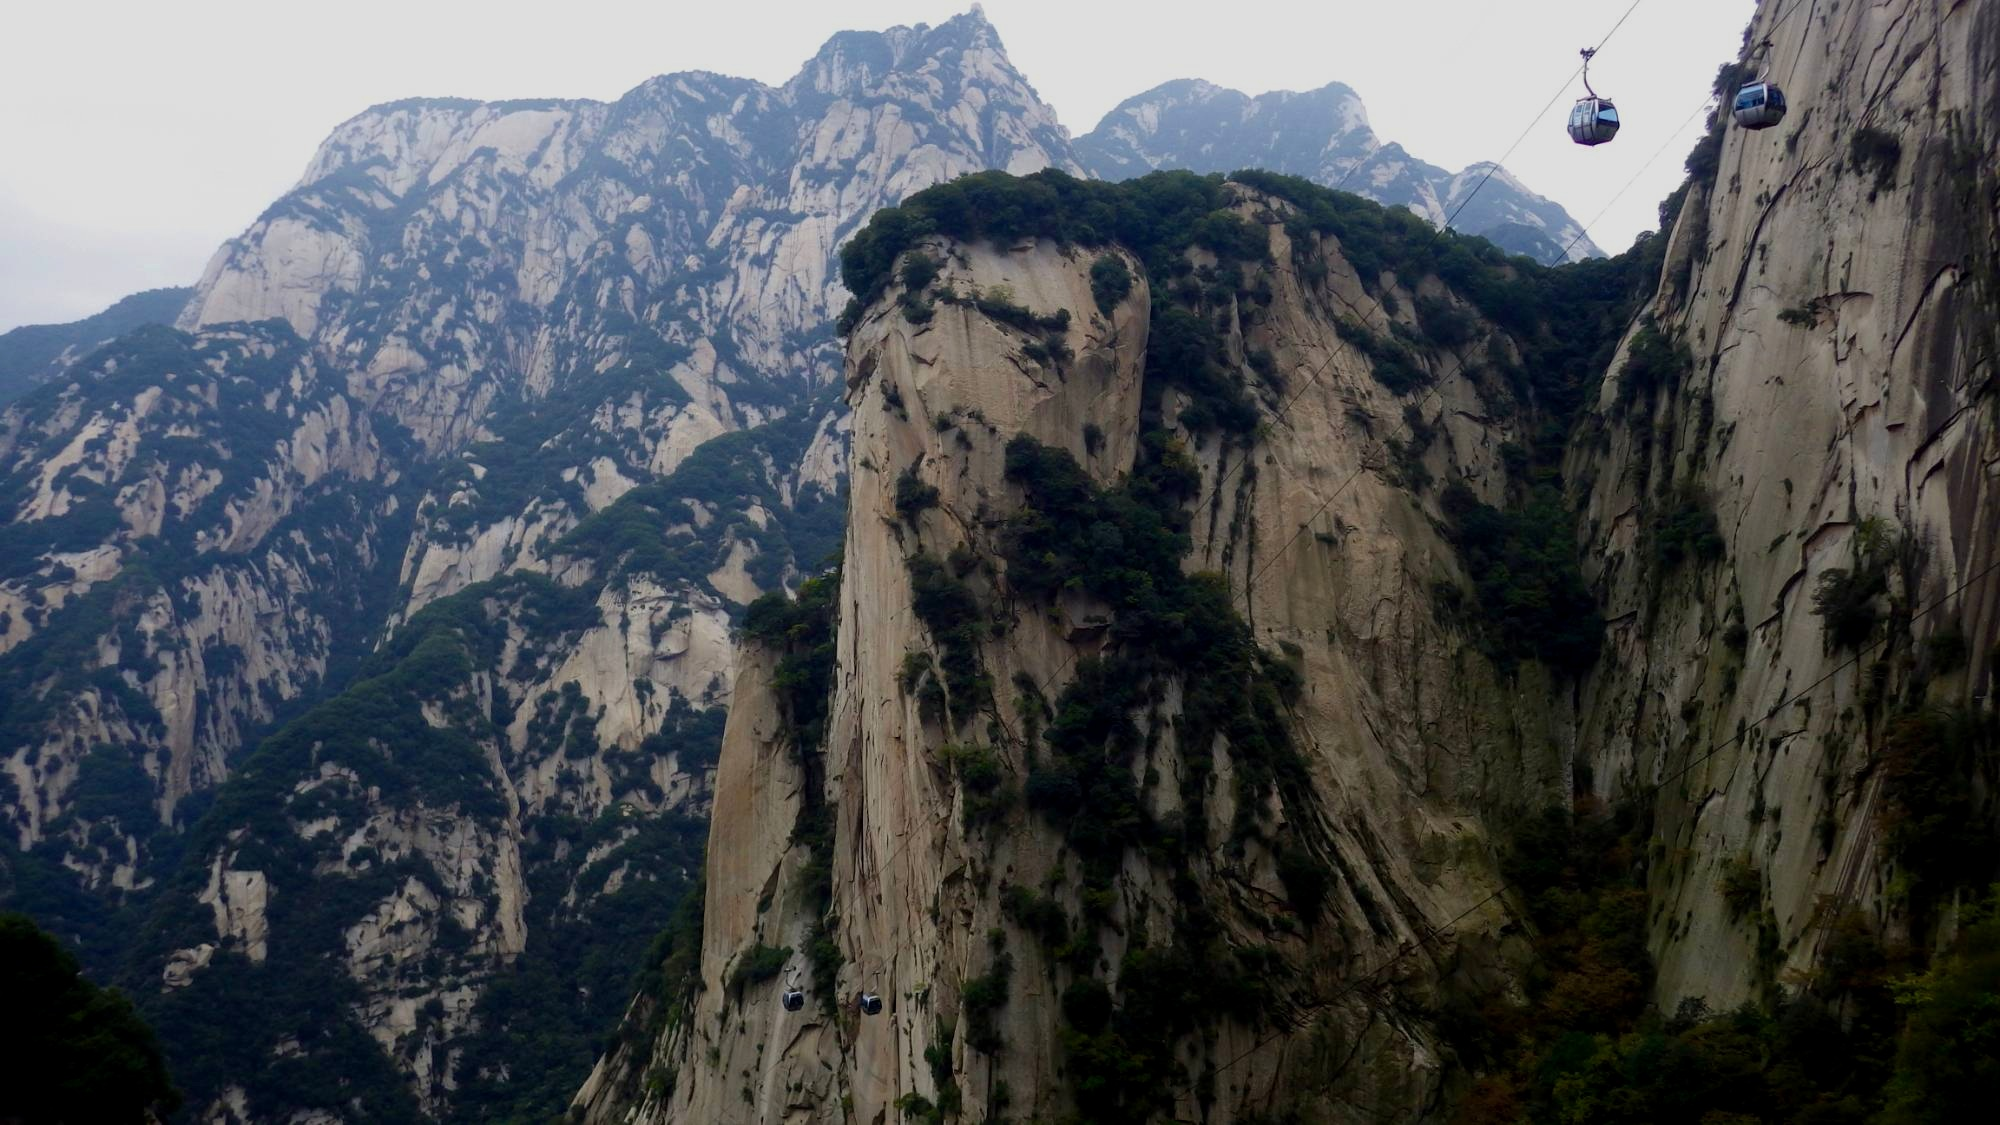 East. - Lying in the Eastern Sub Tropics. Huangshan will lure you into its home of the Immortals, The Yellow Mountains. Famed for its 'Sea of clouds' and natural hot springs, will ensure that you are distracted from the frequent rain.